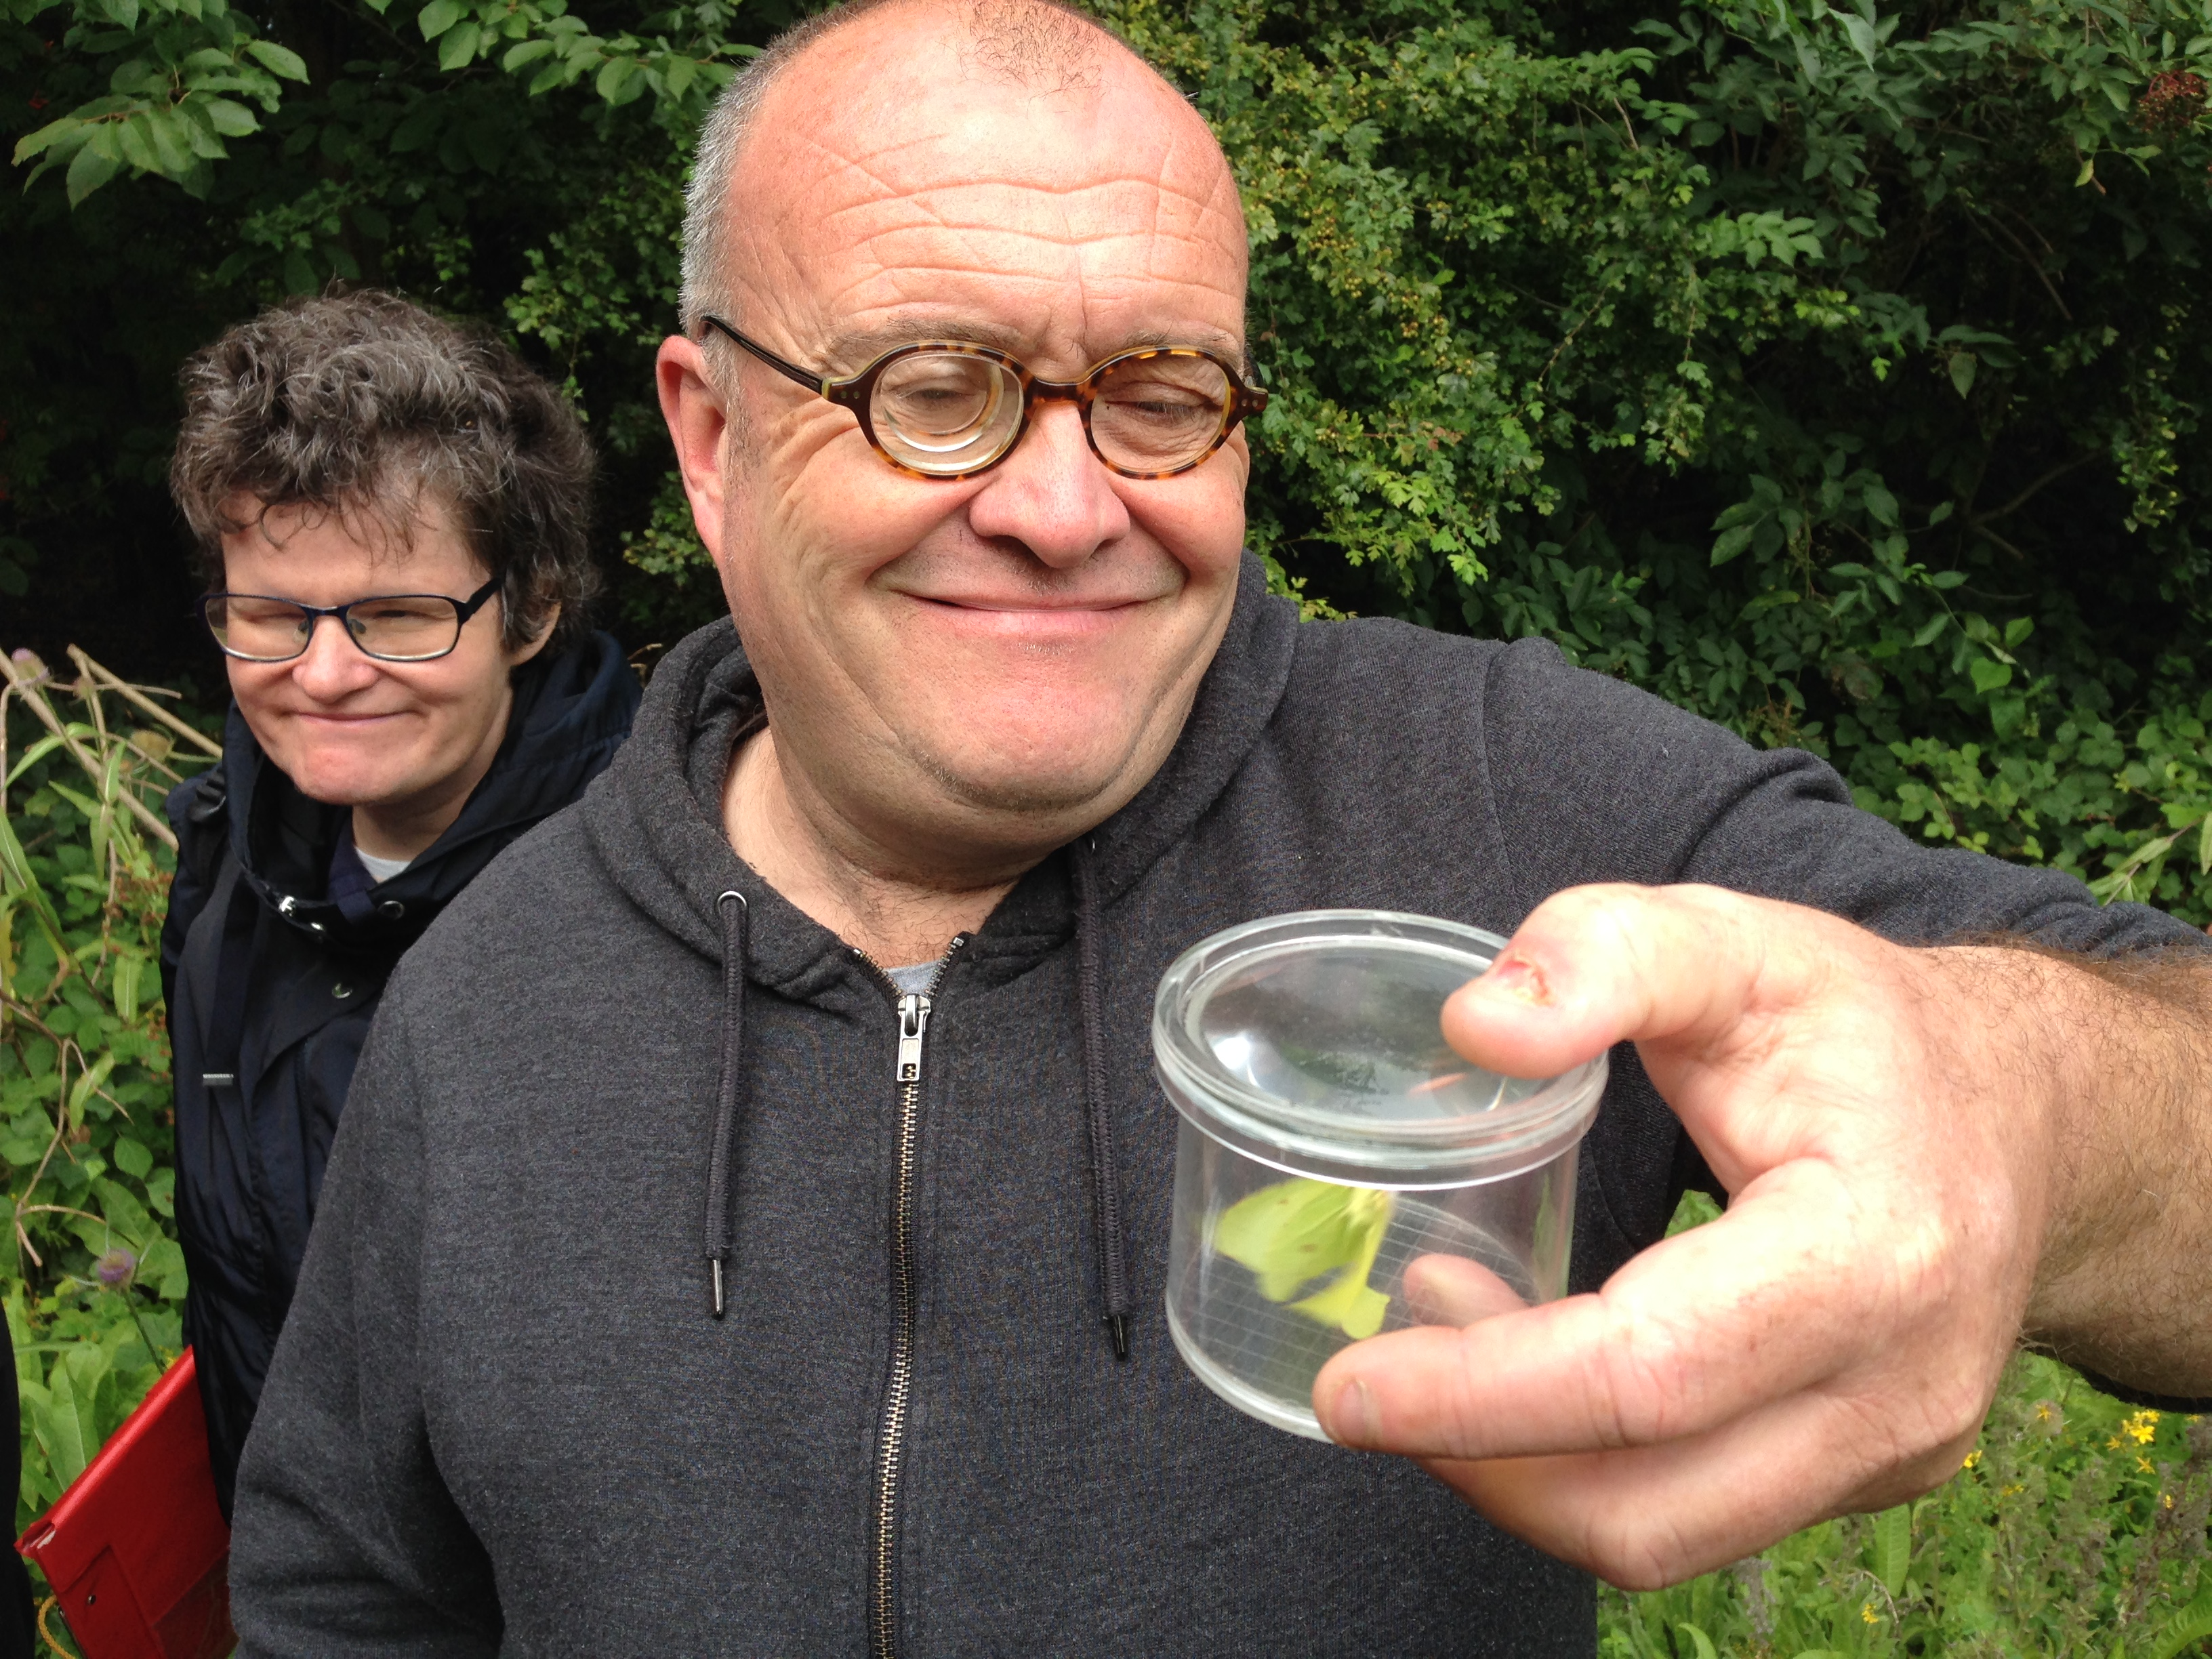 A man smiling and holding a clear container with a butterfly in. A woman is standing behind looking.